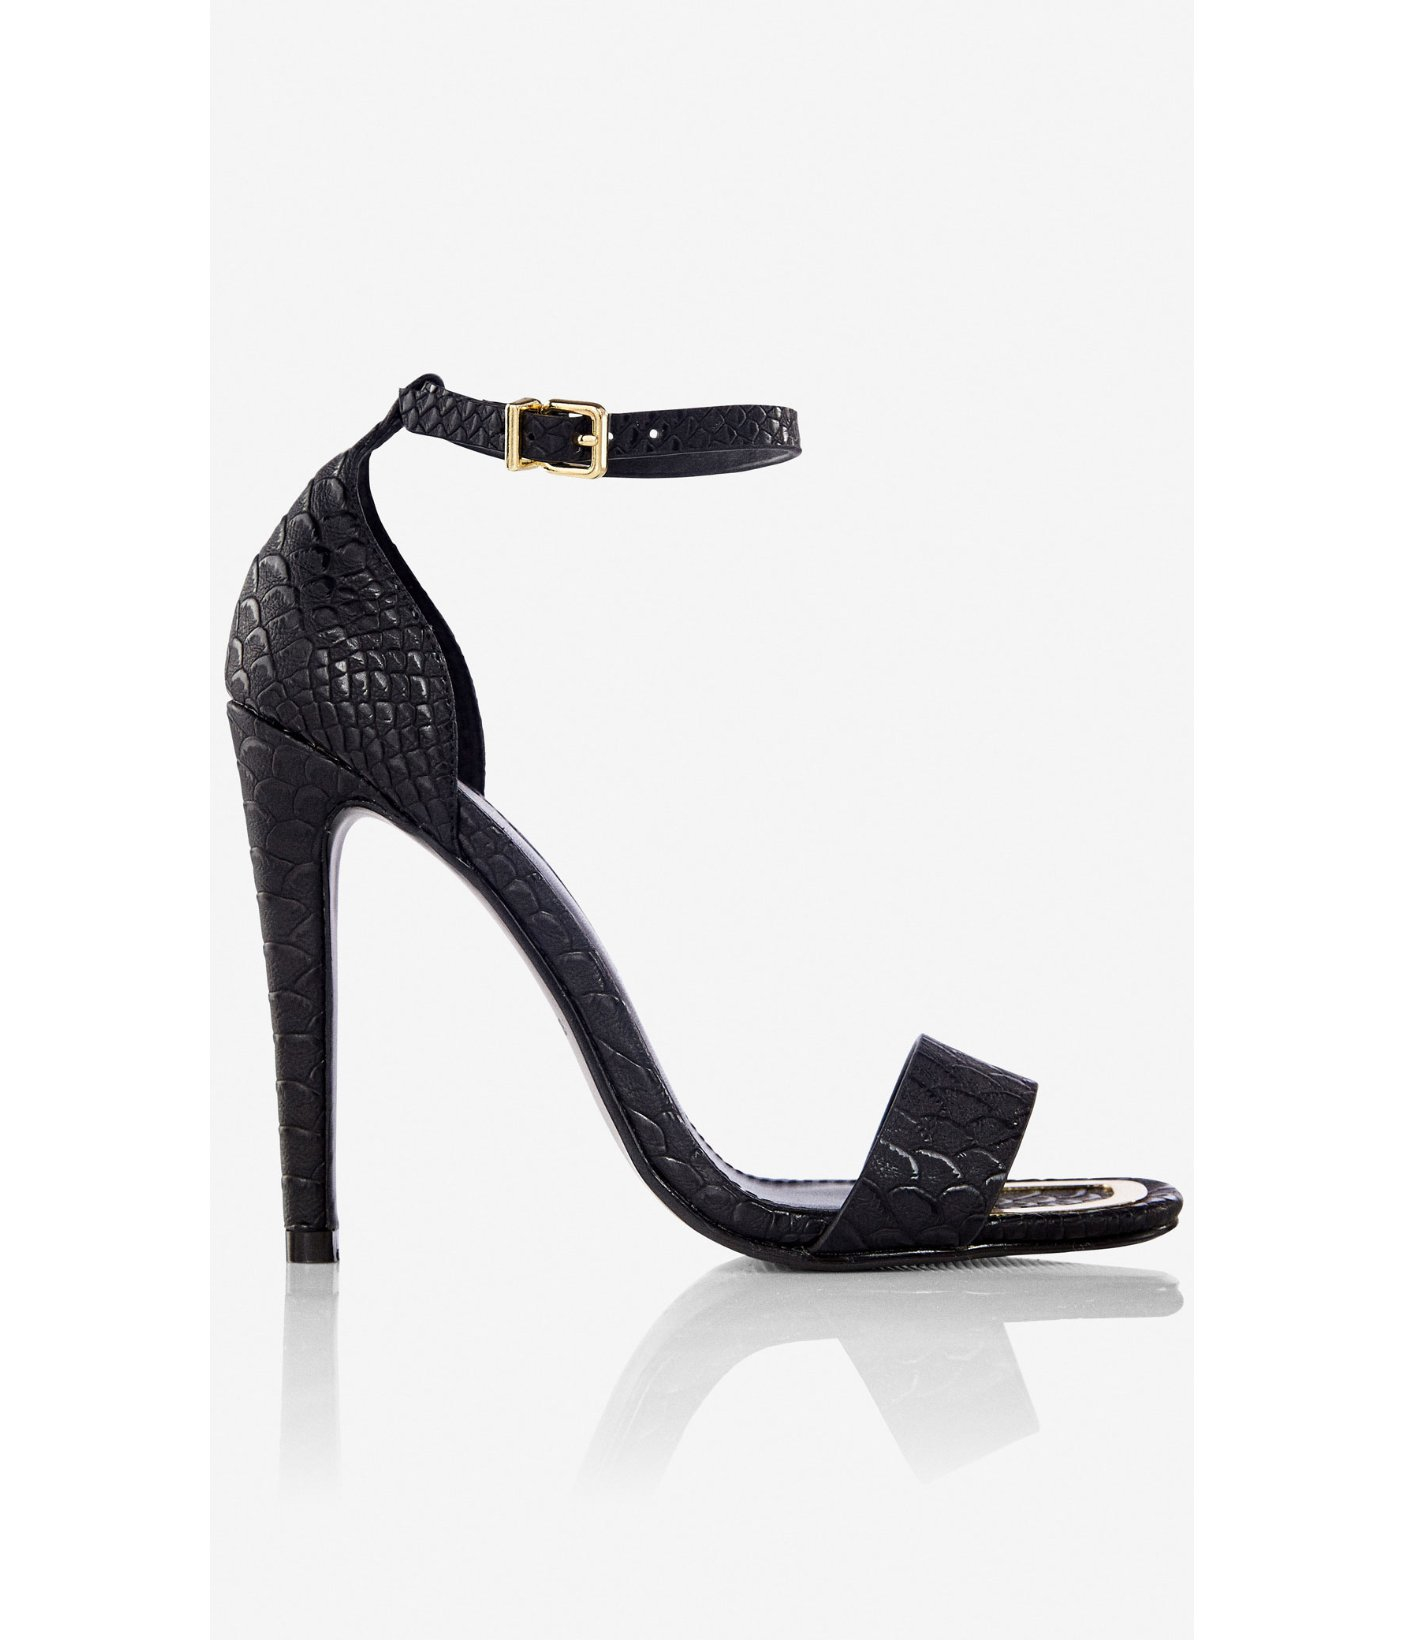 ebe5f579cbe2 Lyst - Express Square Toe Sleek Heeled Sandal in Black